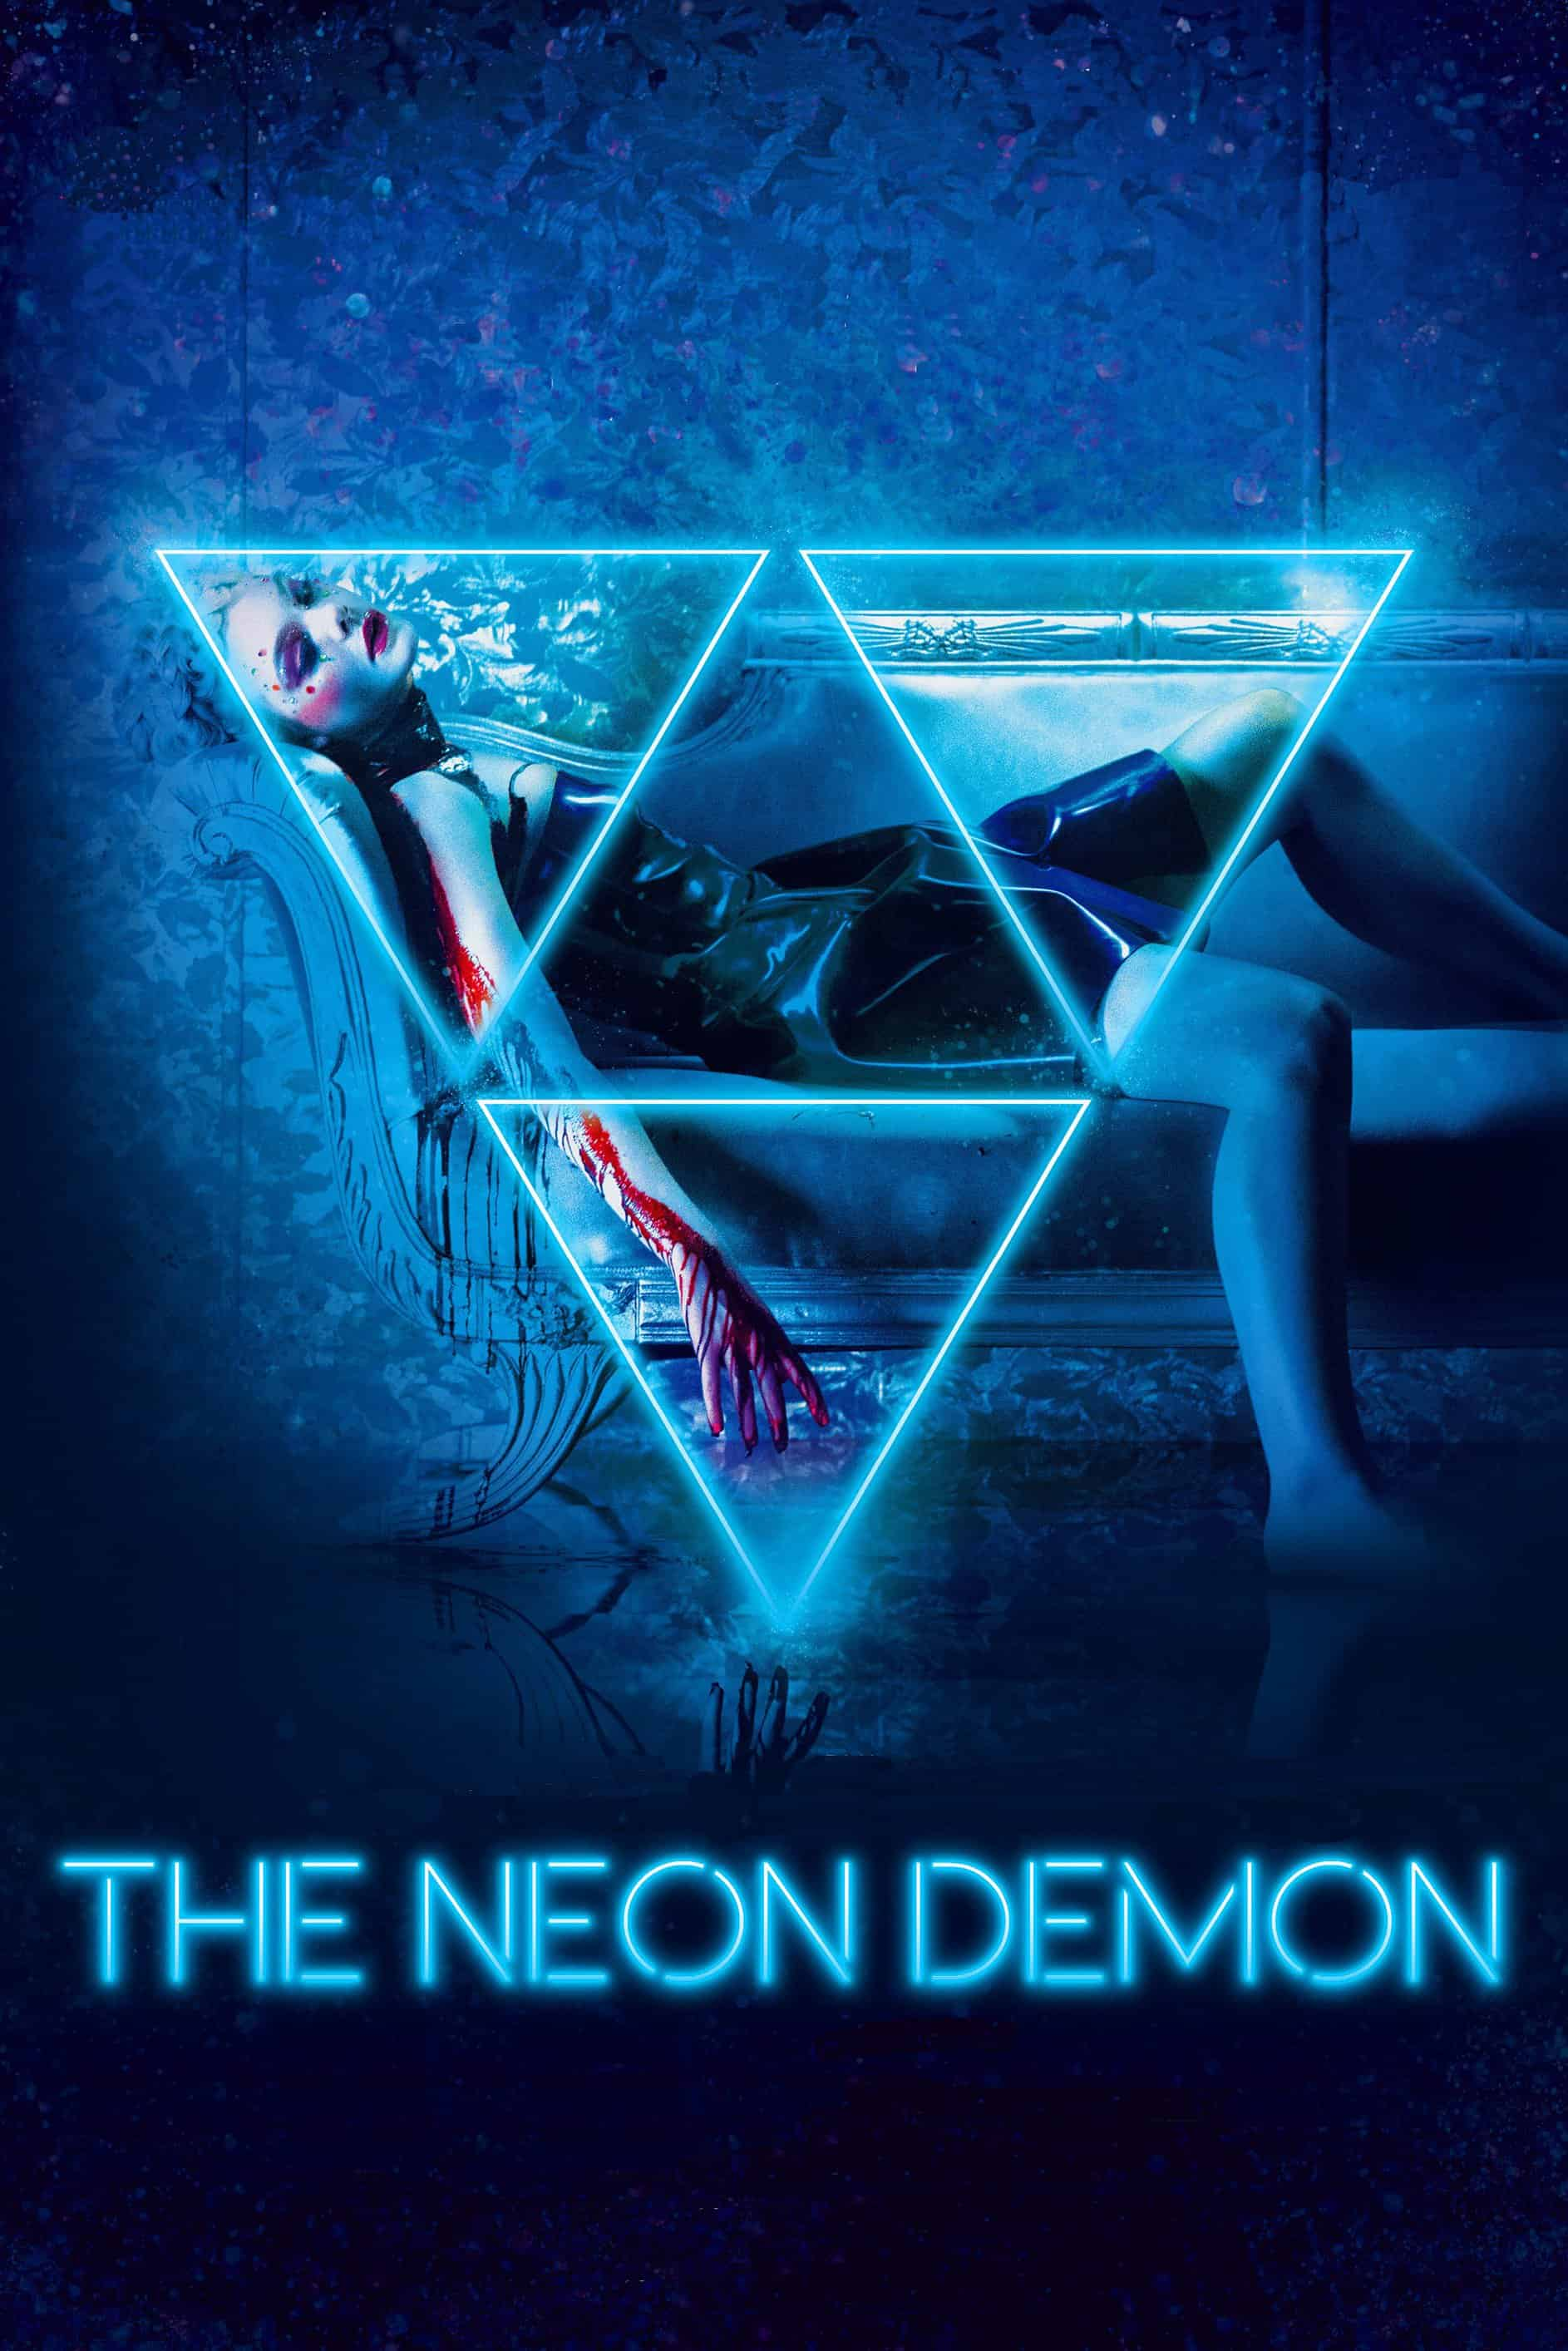 The Neon Demon, 2016